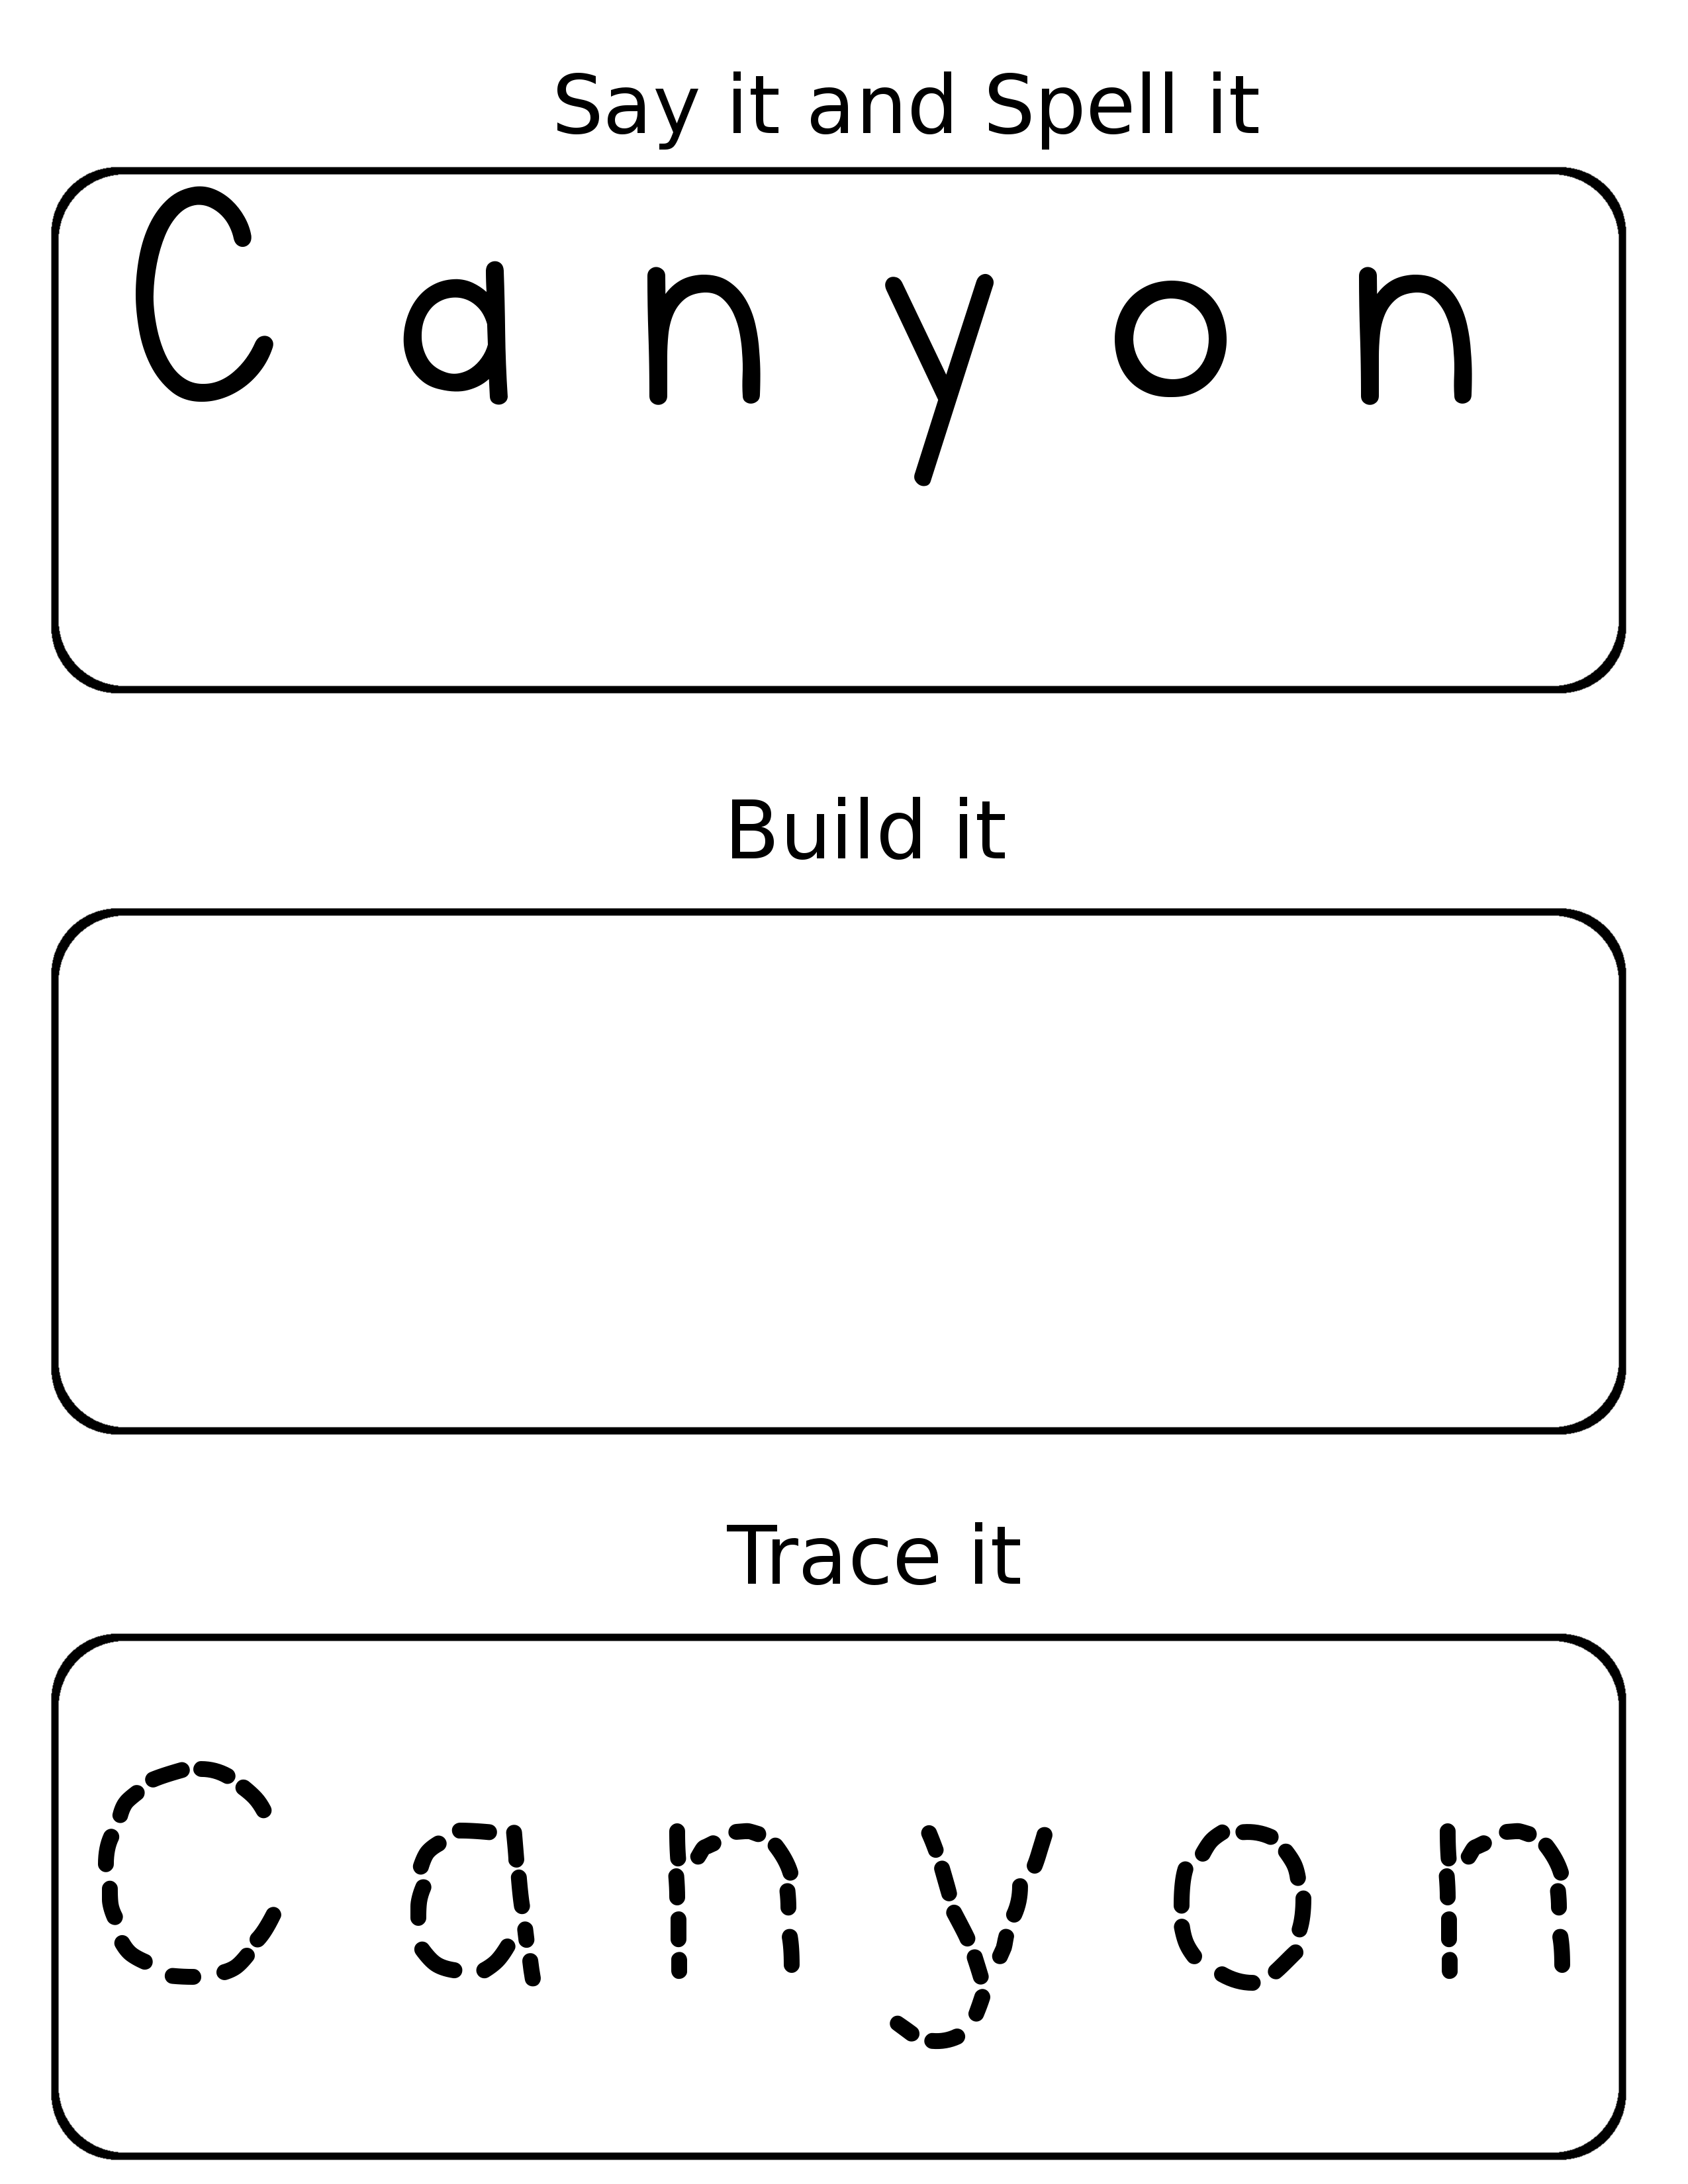 Your Child Can Use Fridge Magnets Or Wooden Letters Or